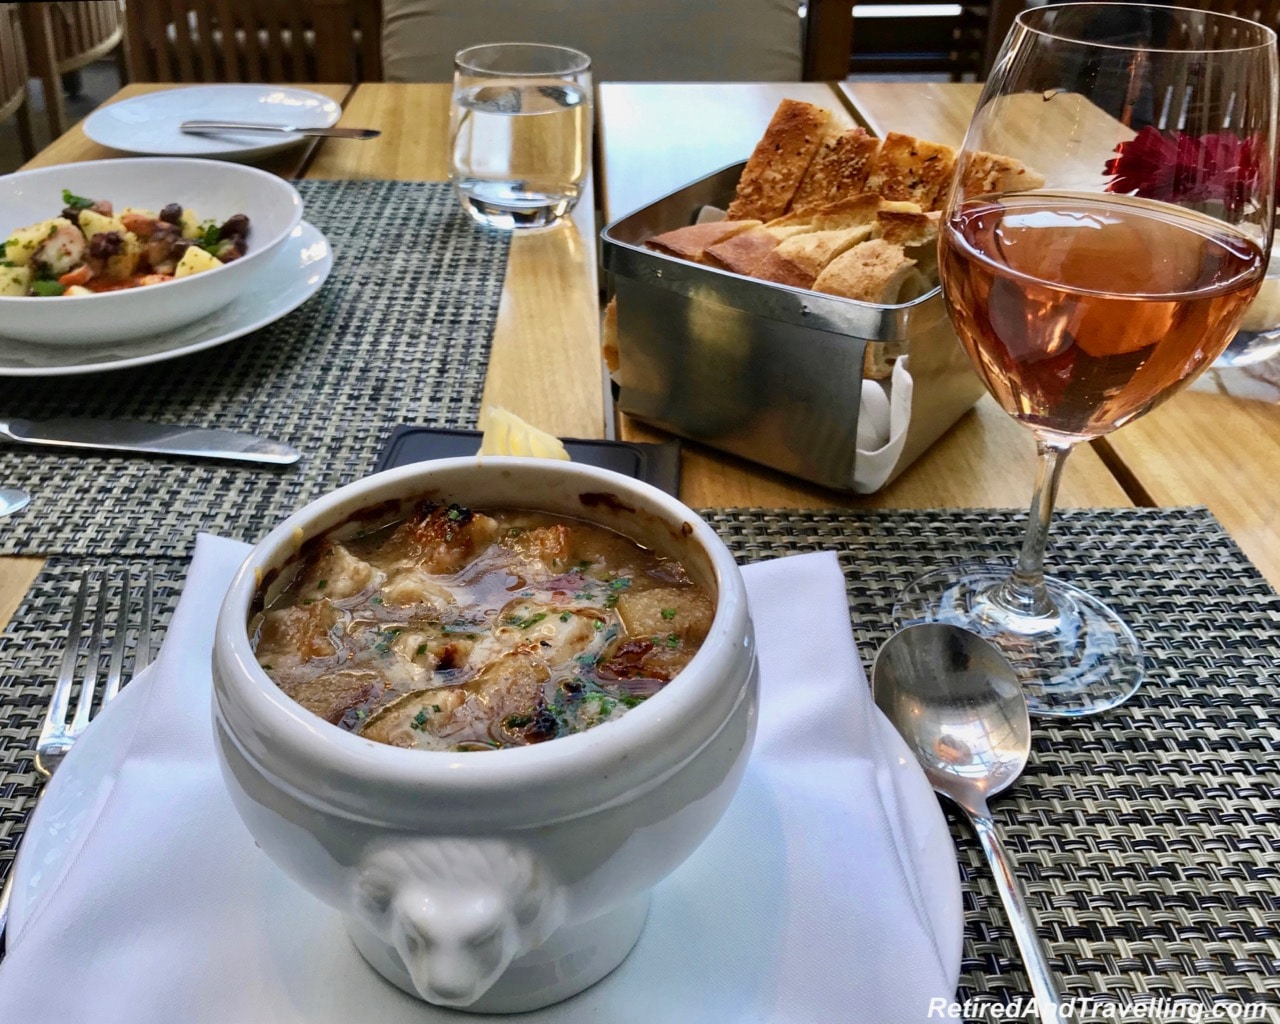 Maison Boulud Restaurant Food Oxtail Onion Soup - Luxury Getaway At Ritz-Carlton Montreal.jpg